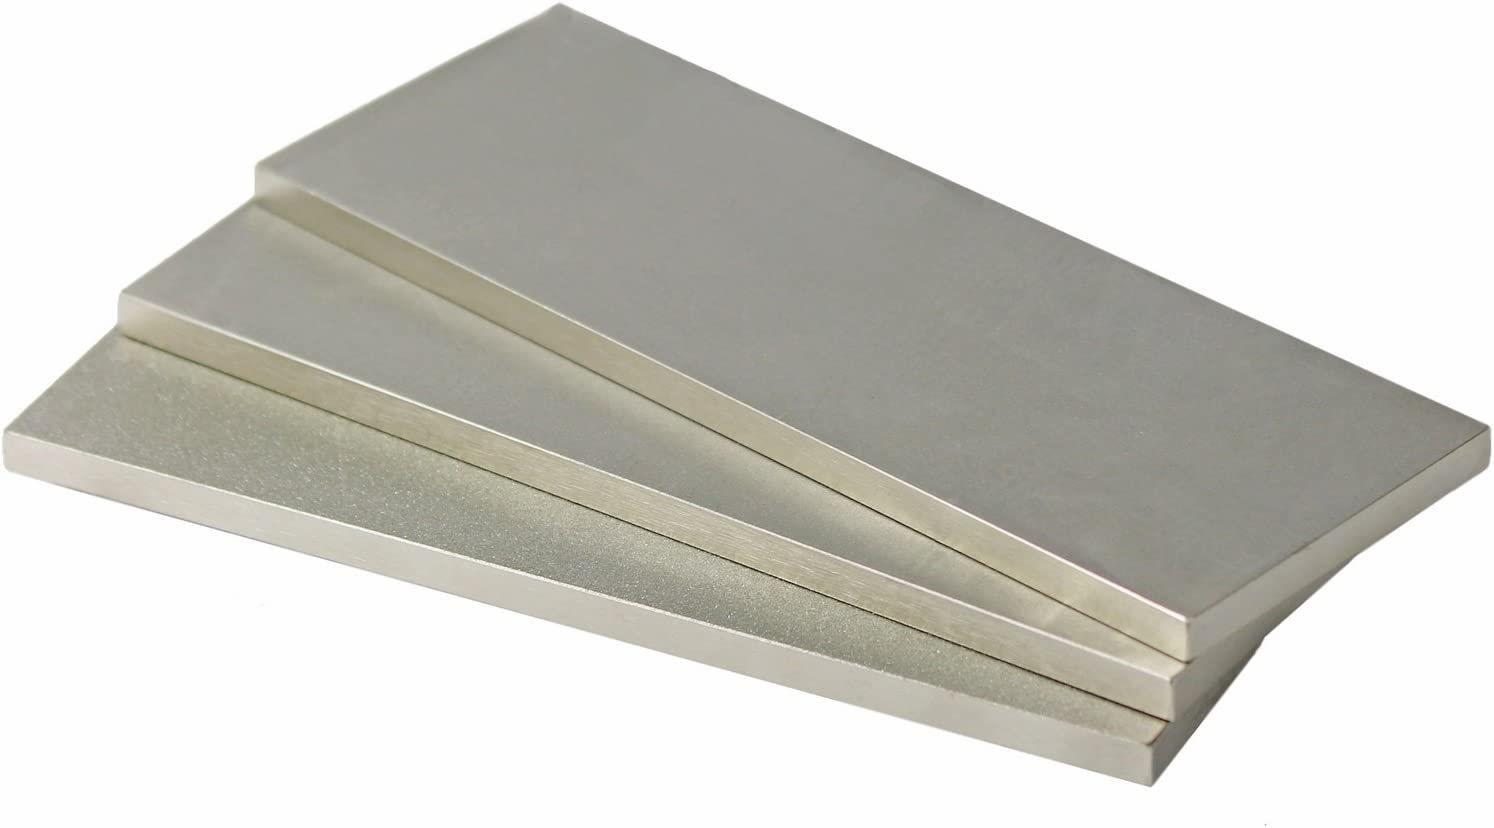 Ultra Sharp Diamond Sharpening Stone Set 8 x 3 Coarse//Medium//Extra Fine